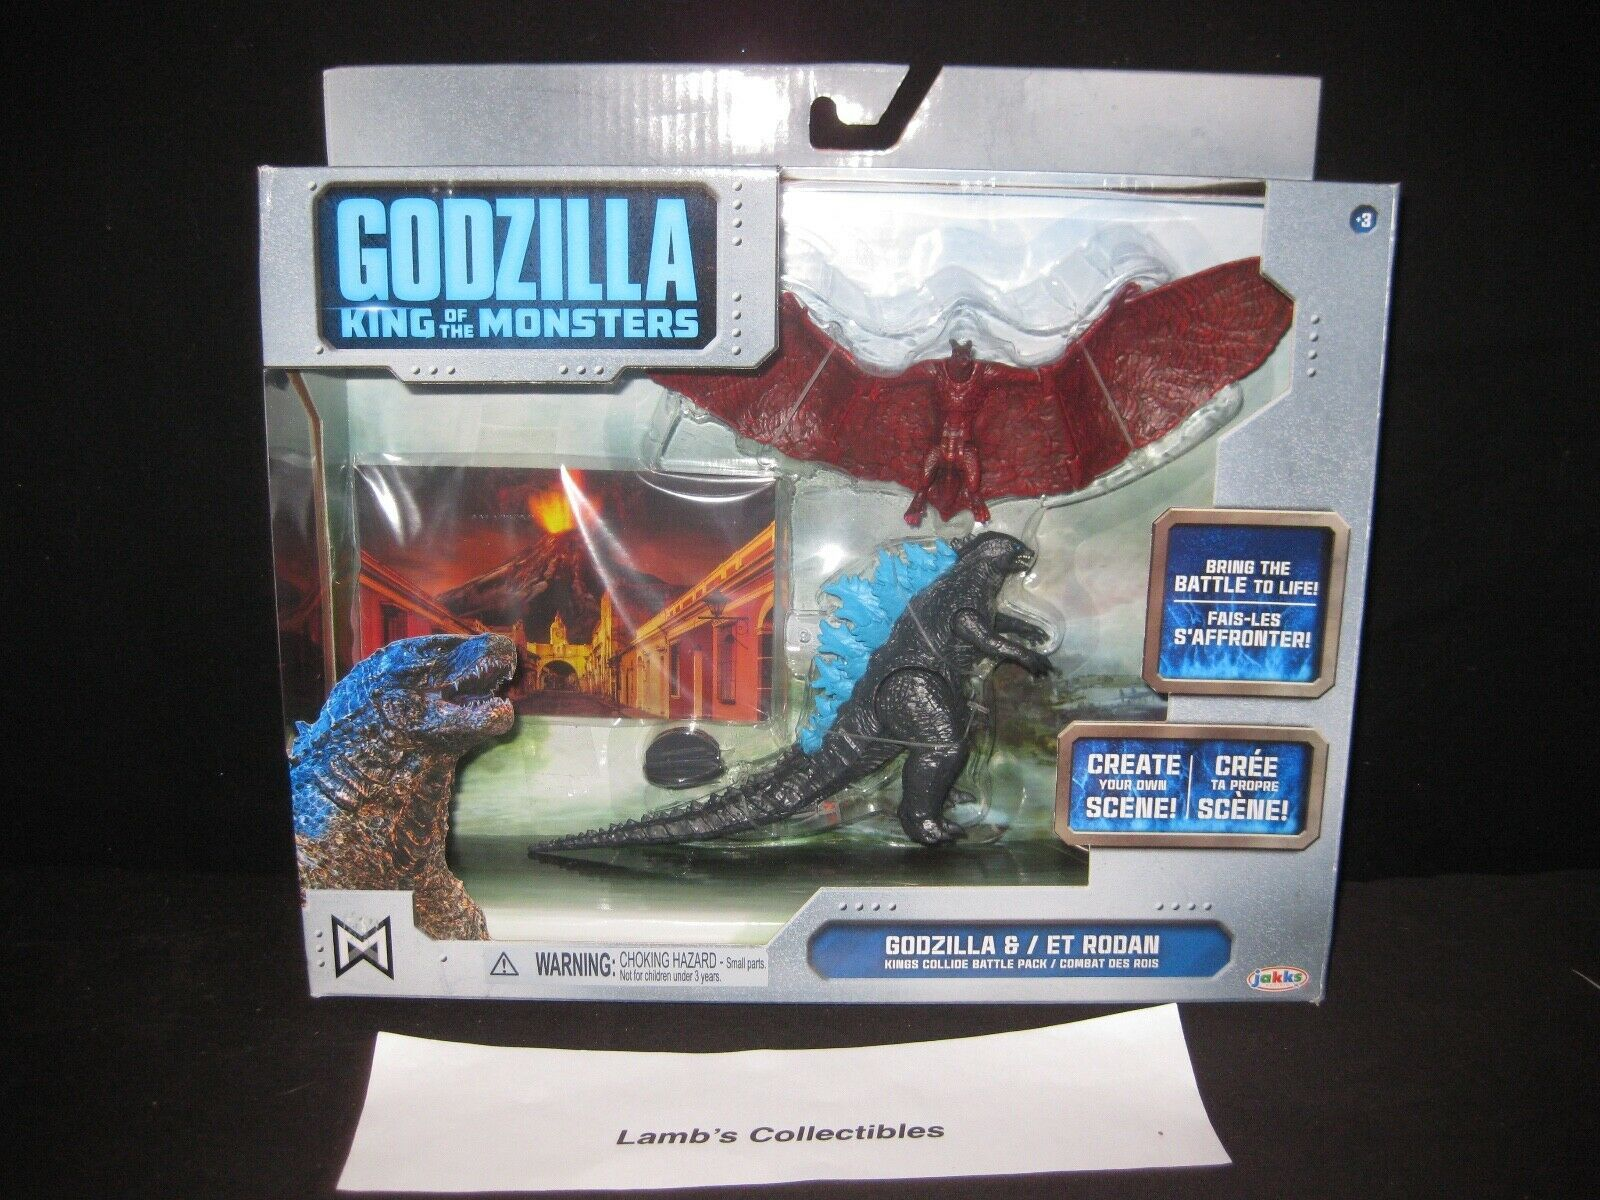 Primary image for Godzilla King of the Monsters collide battle pack Atomic Blast Godzilla & Rodan